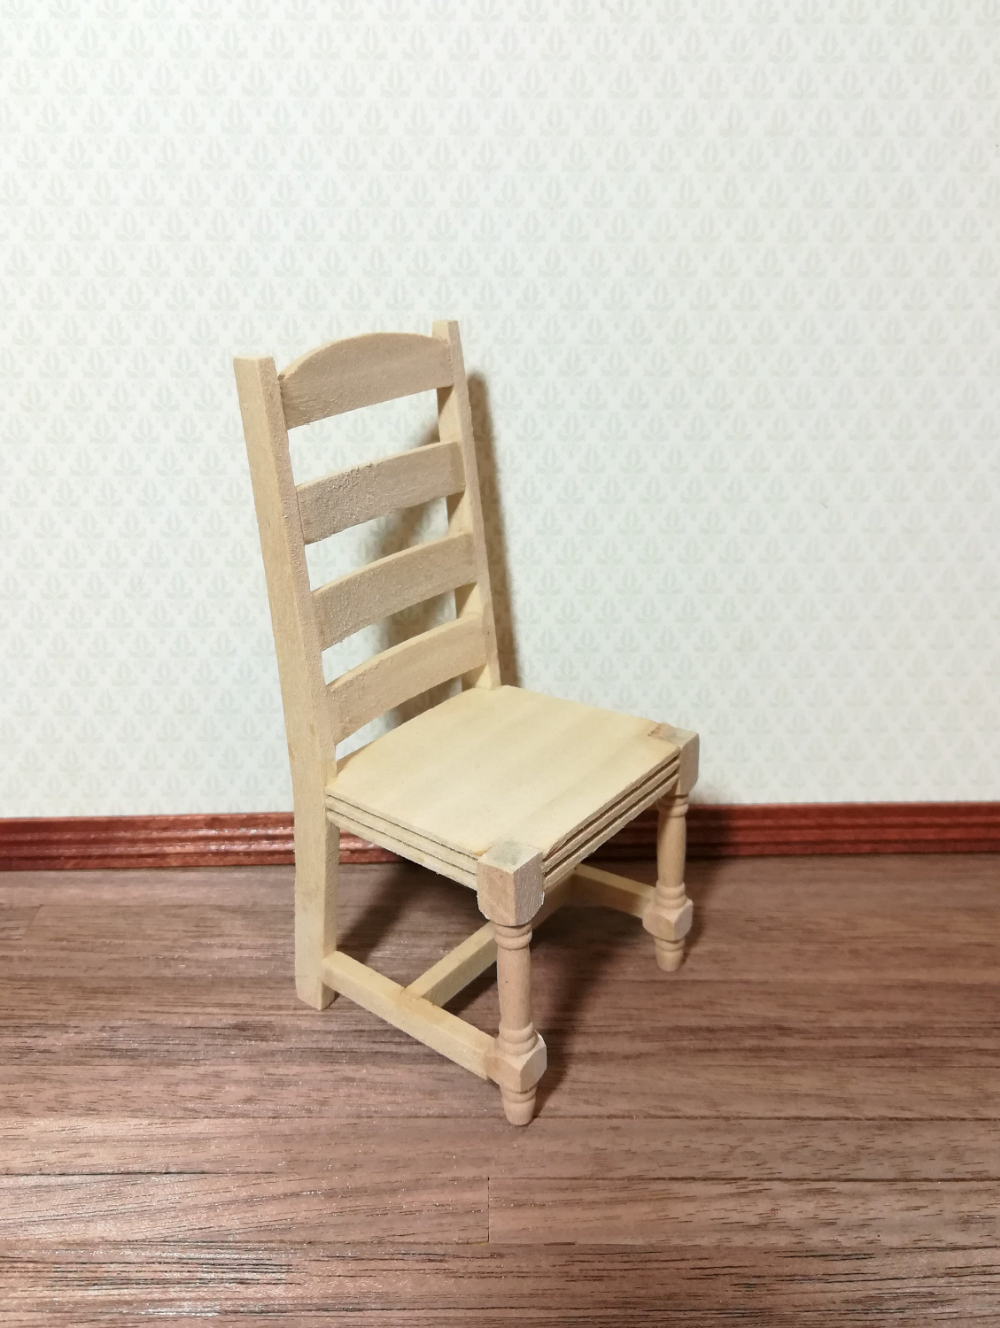 Dollhouse Miniature Rocking Chair 1:12 Scale Furniture Unfinished Wood